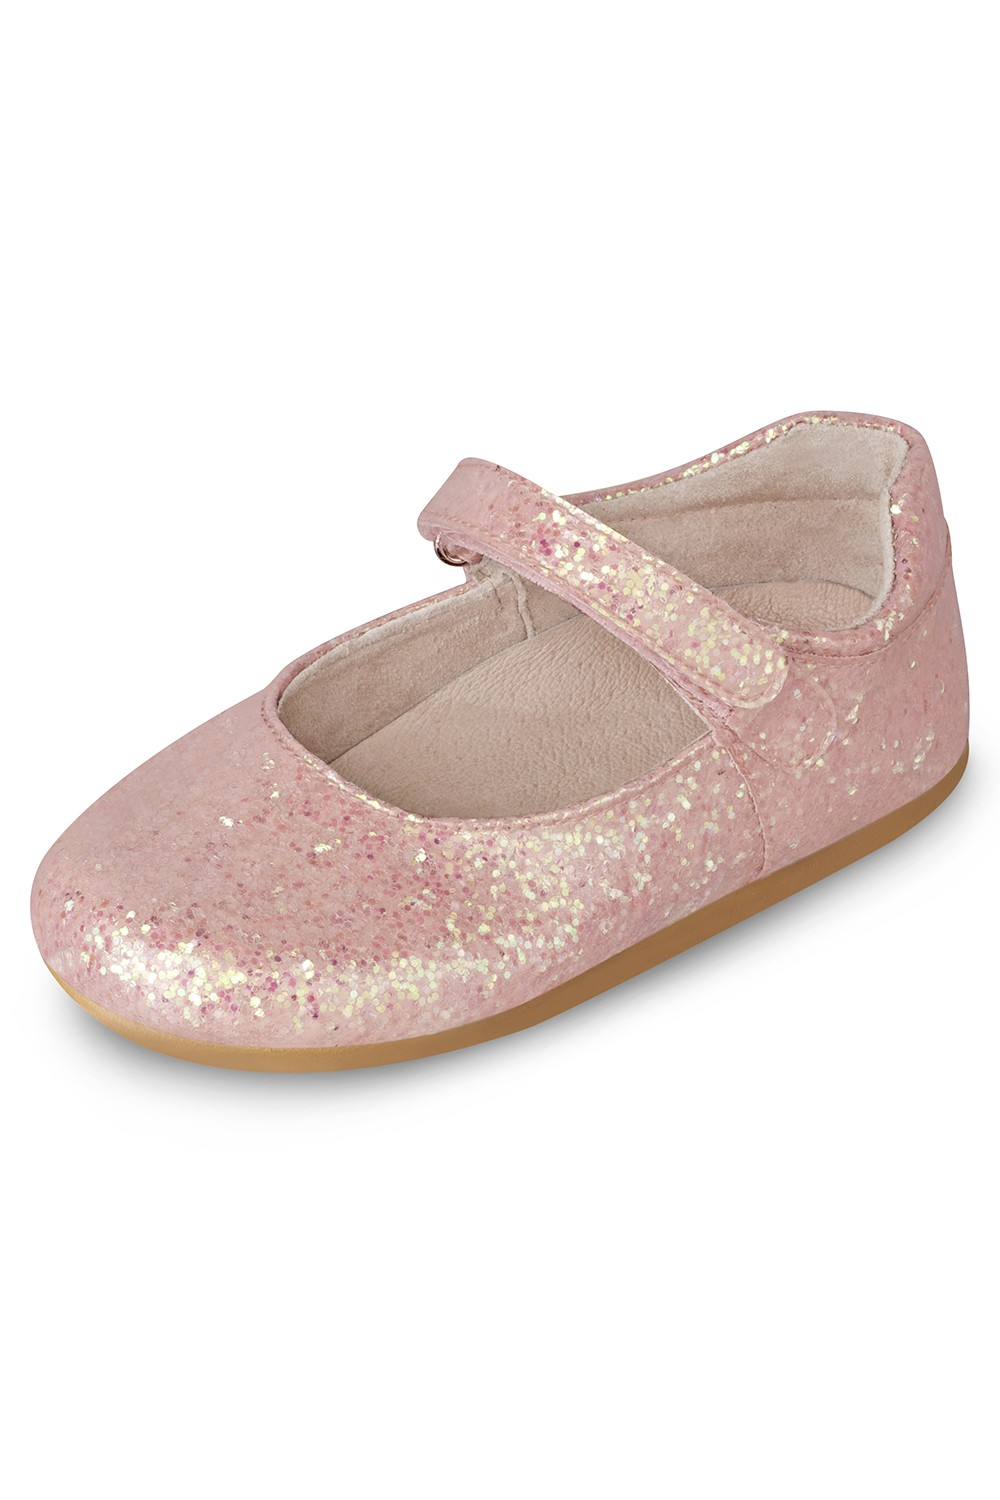 Put their best foot forward with our collection of children's dance shoes for ballet, tap, jazz and more. You'll find the perfect pair from brands you love.